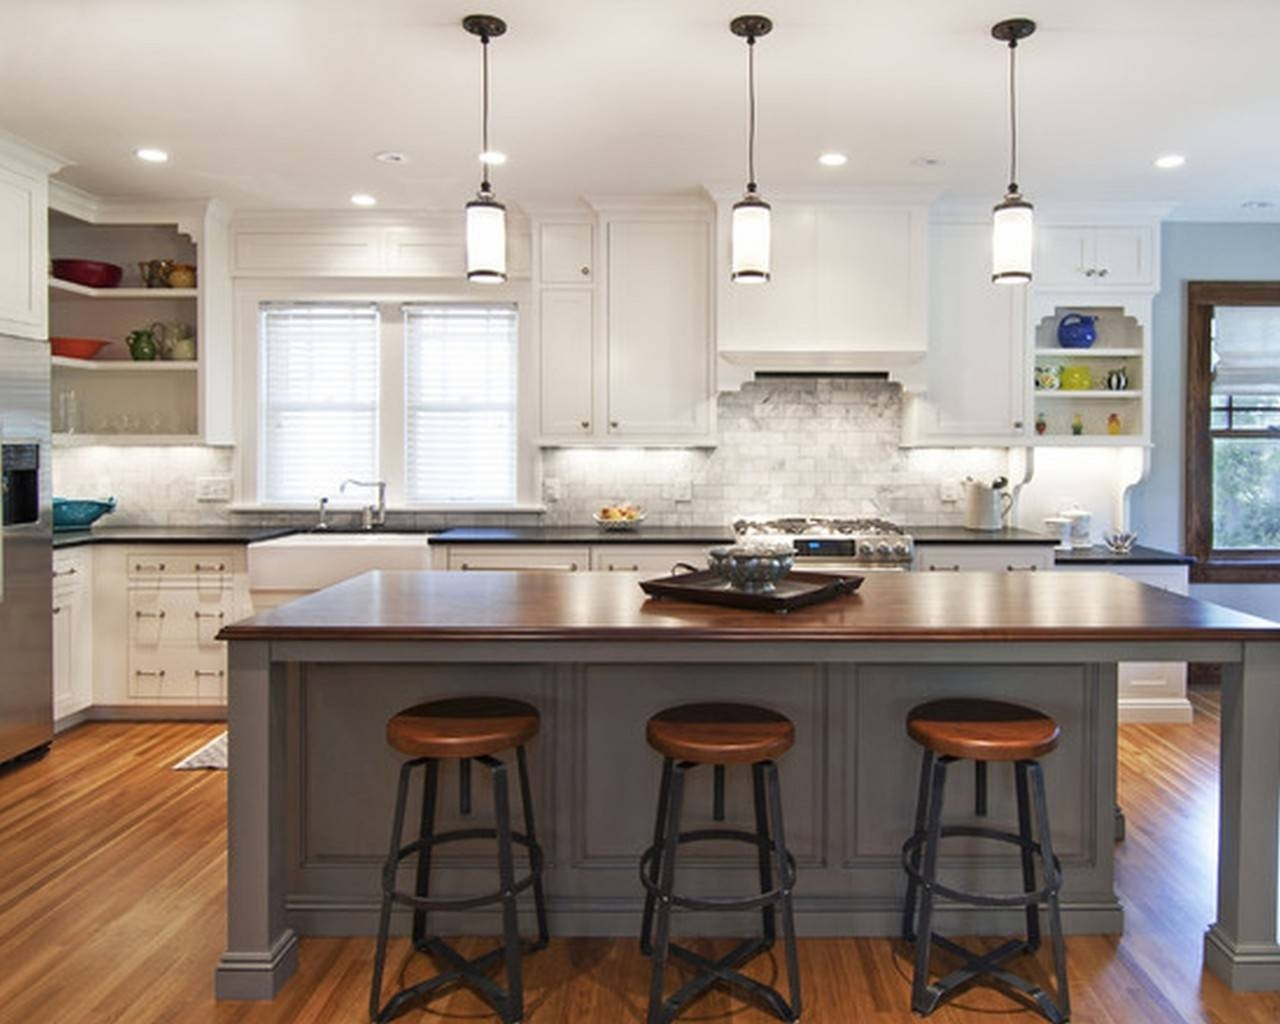 15 collection of drop pendant lights for kitchen